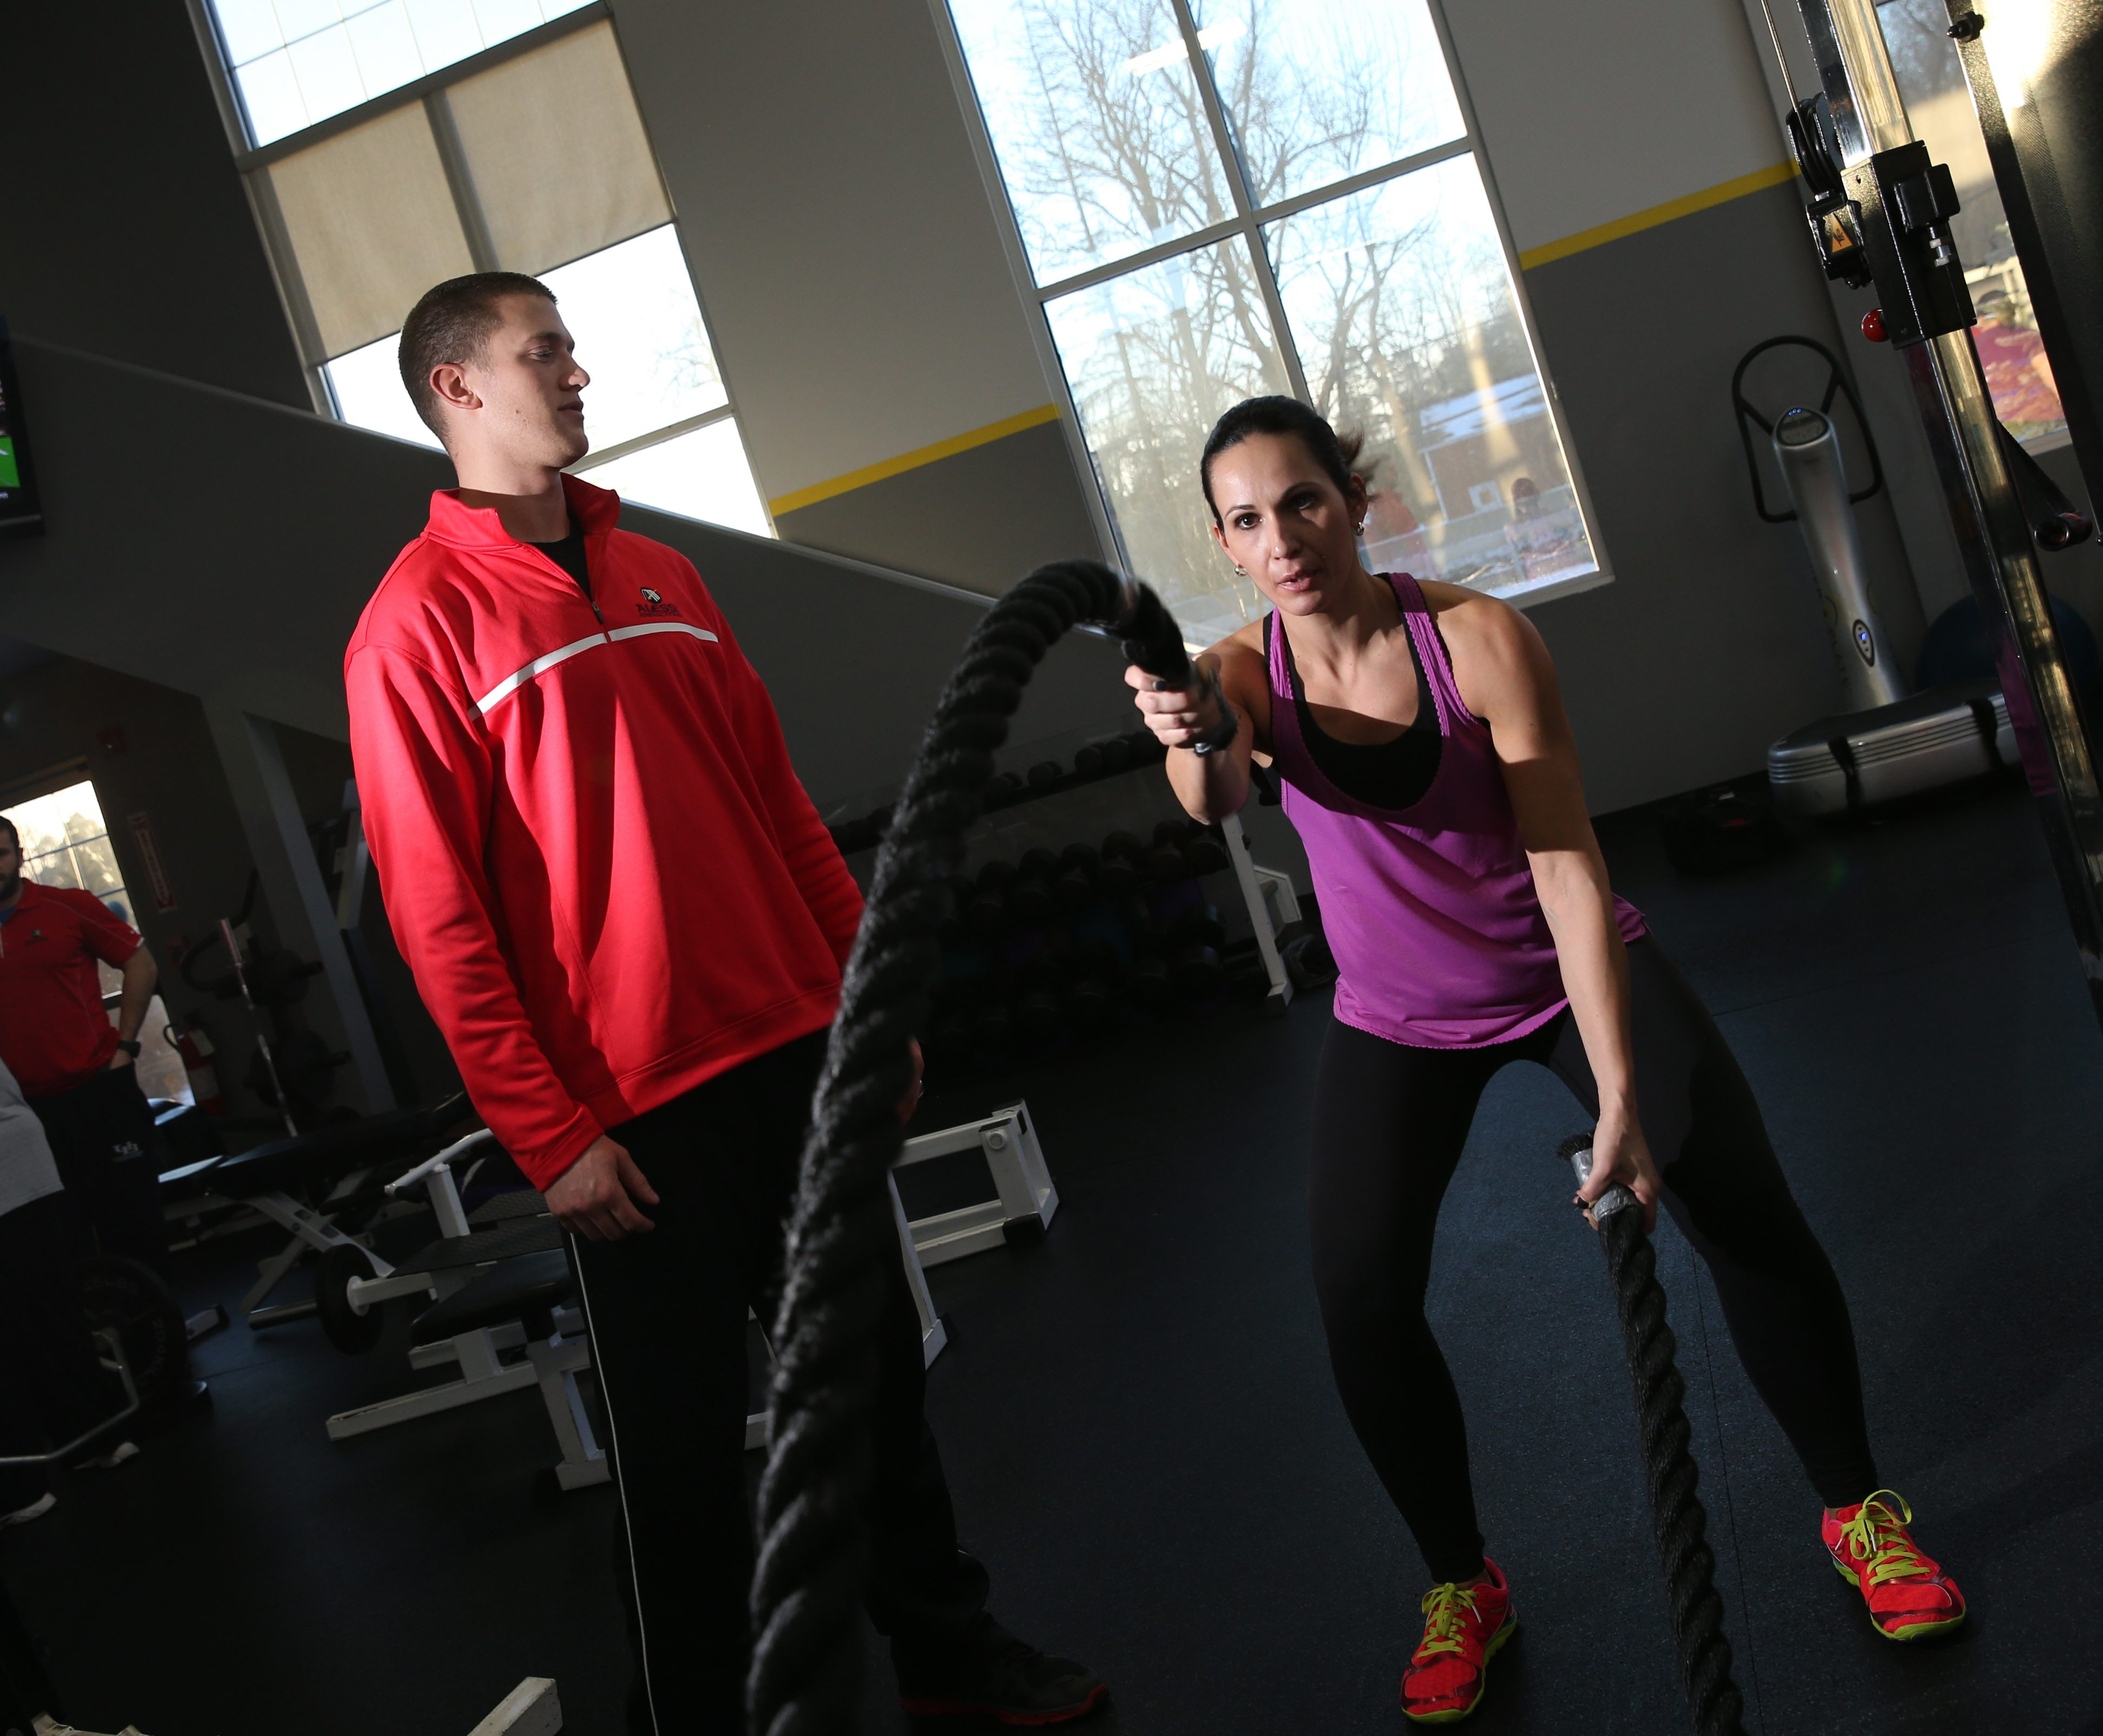 Dianne Myers, 35, of Clarence, is trying to take her fitness to the next level. She works out at Alessi Personal Fitness, Wednesday, Jan. 28, 2015.   She's doing the battle ropes as her trainer Travis Denman works with her.  (Sharon Cantillon/Buffalo News)